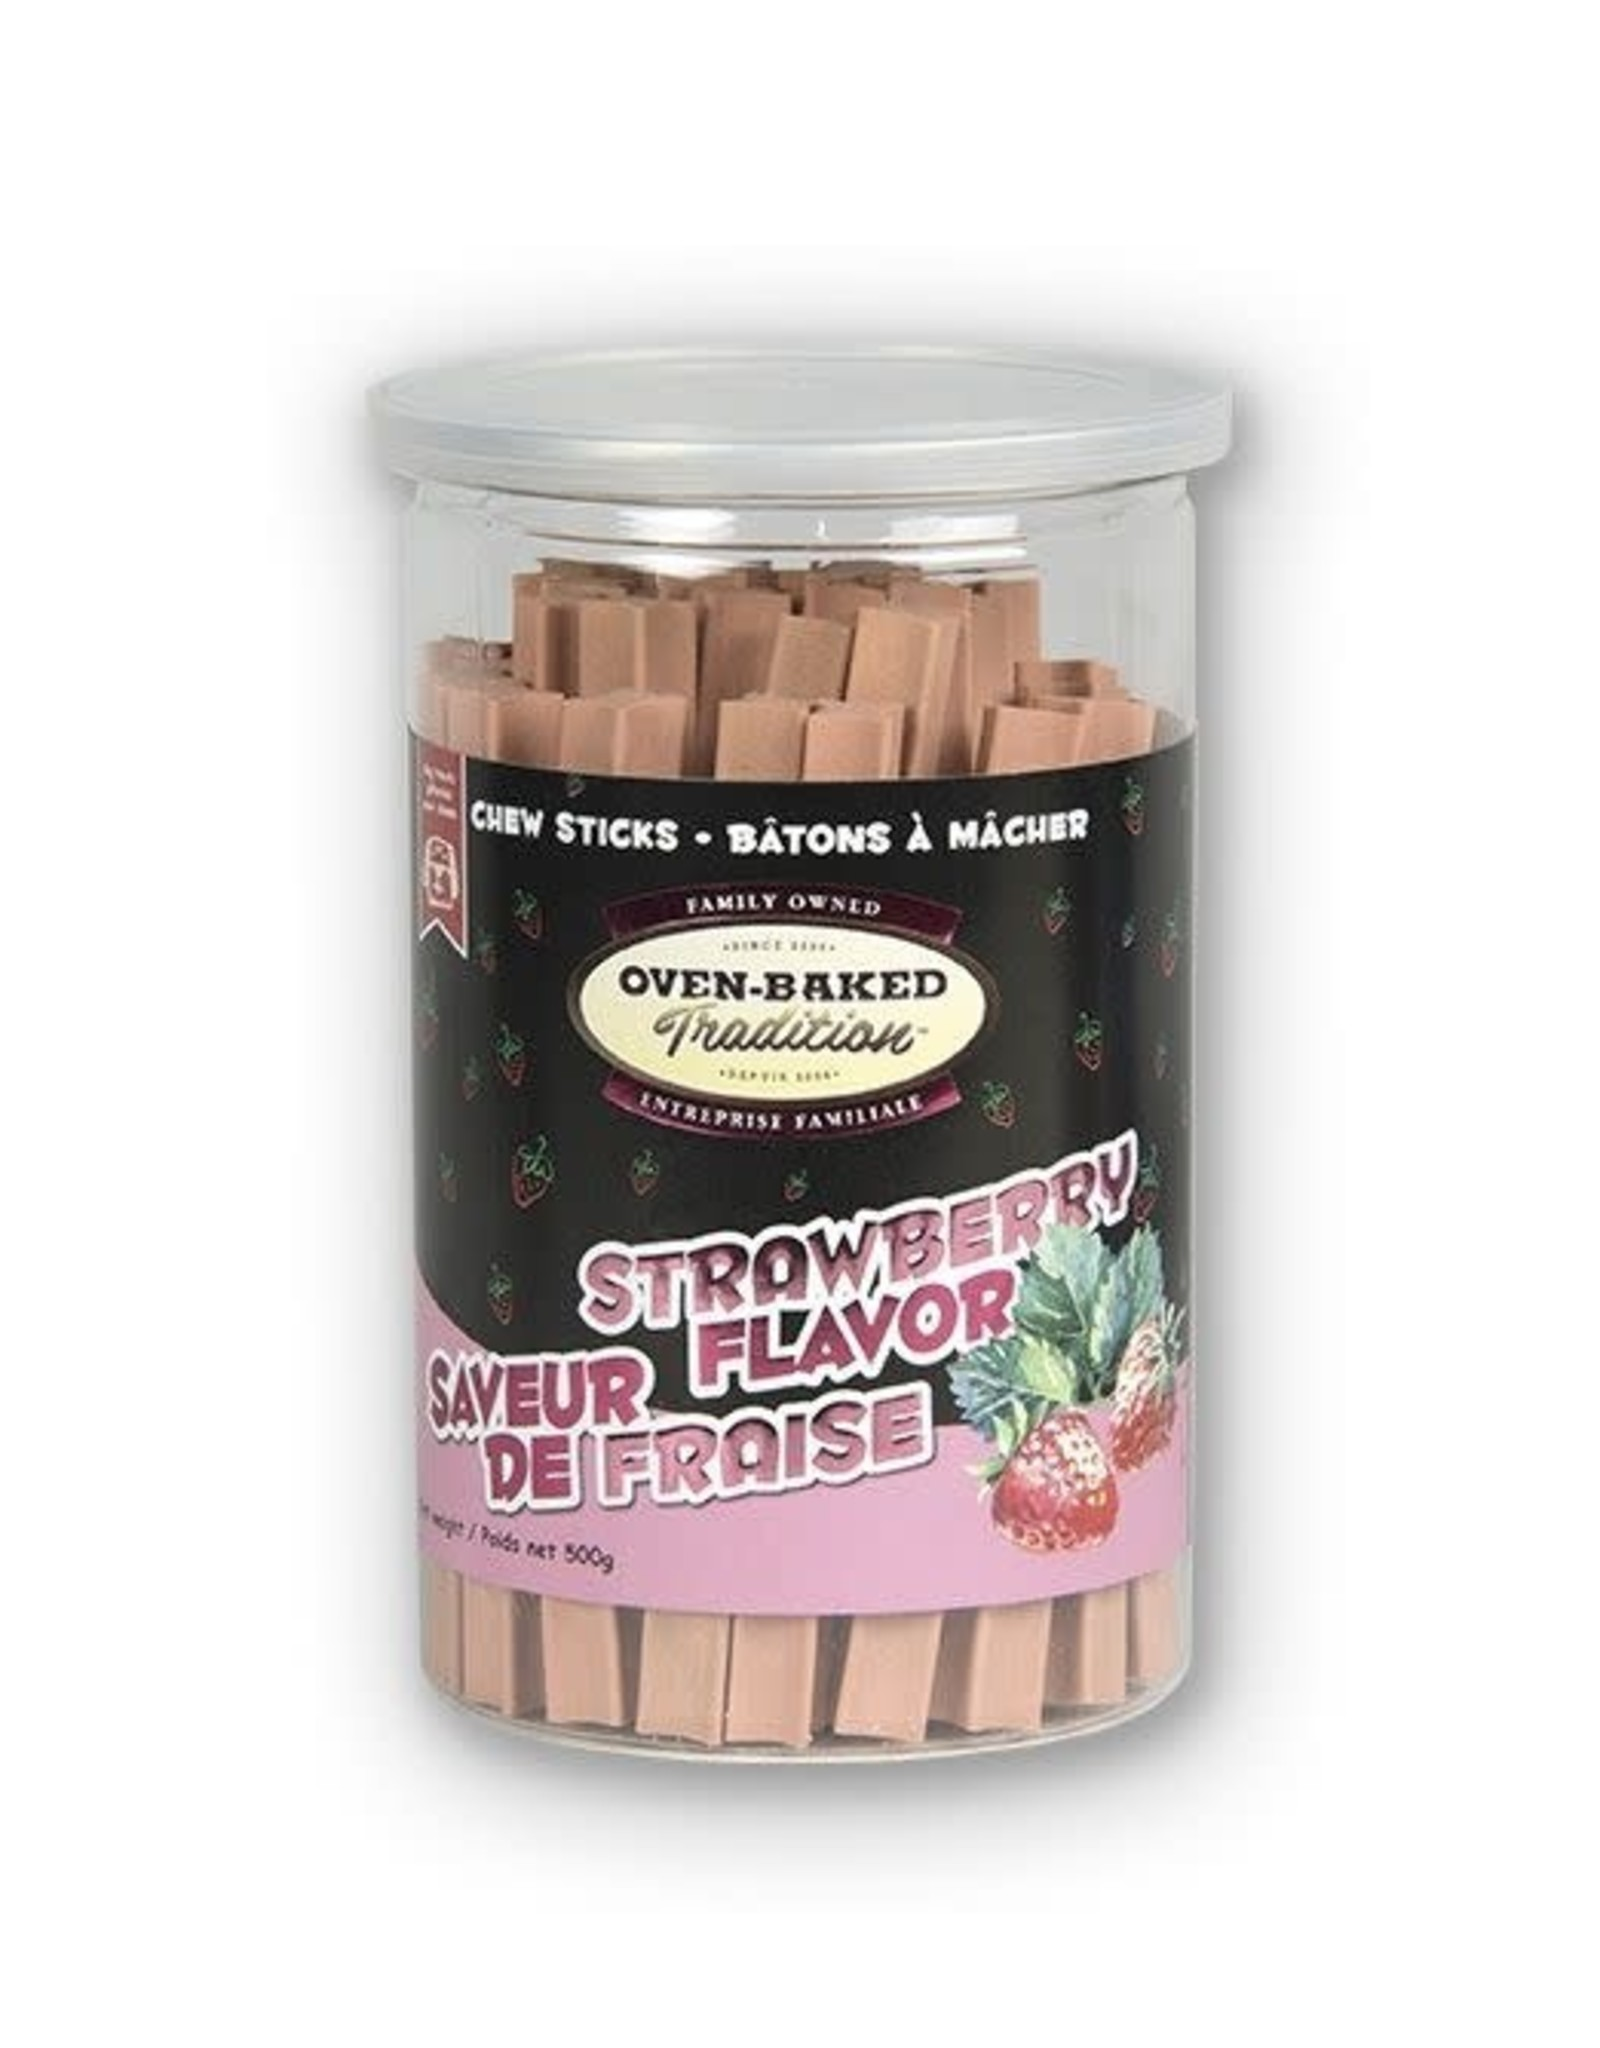 Oven Baked Tradition Strawberry Flavour Chew Sticks, 200g